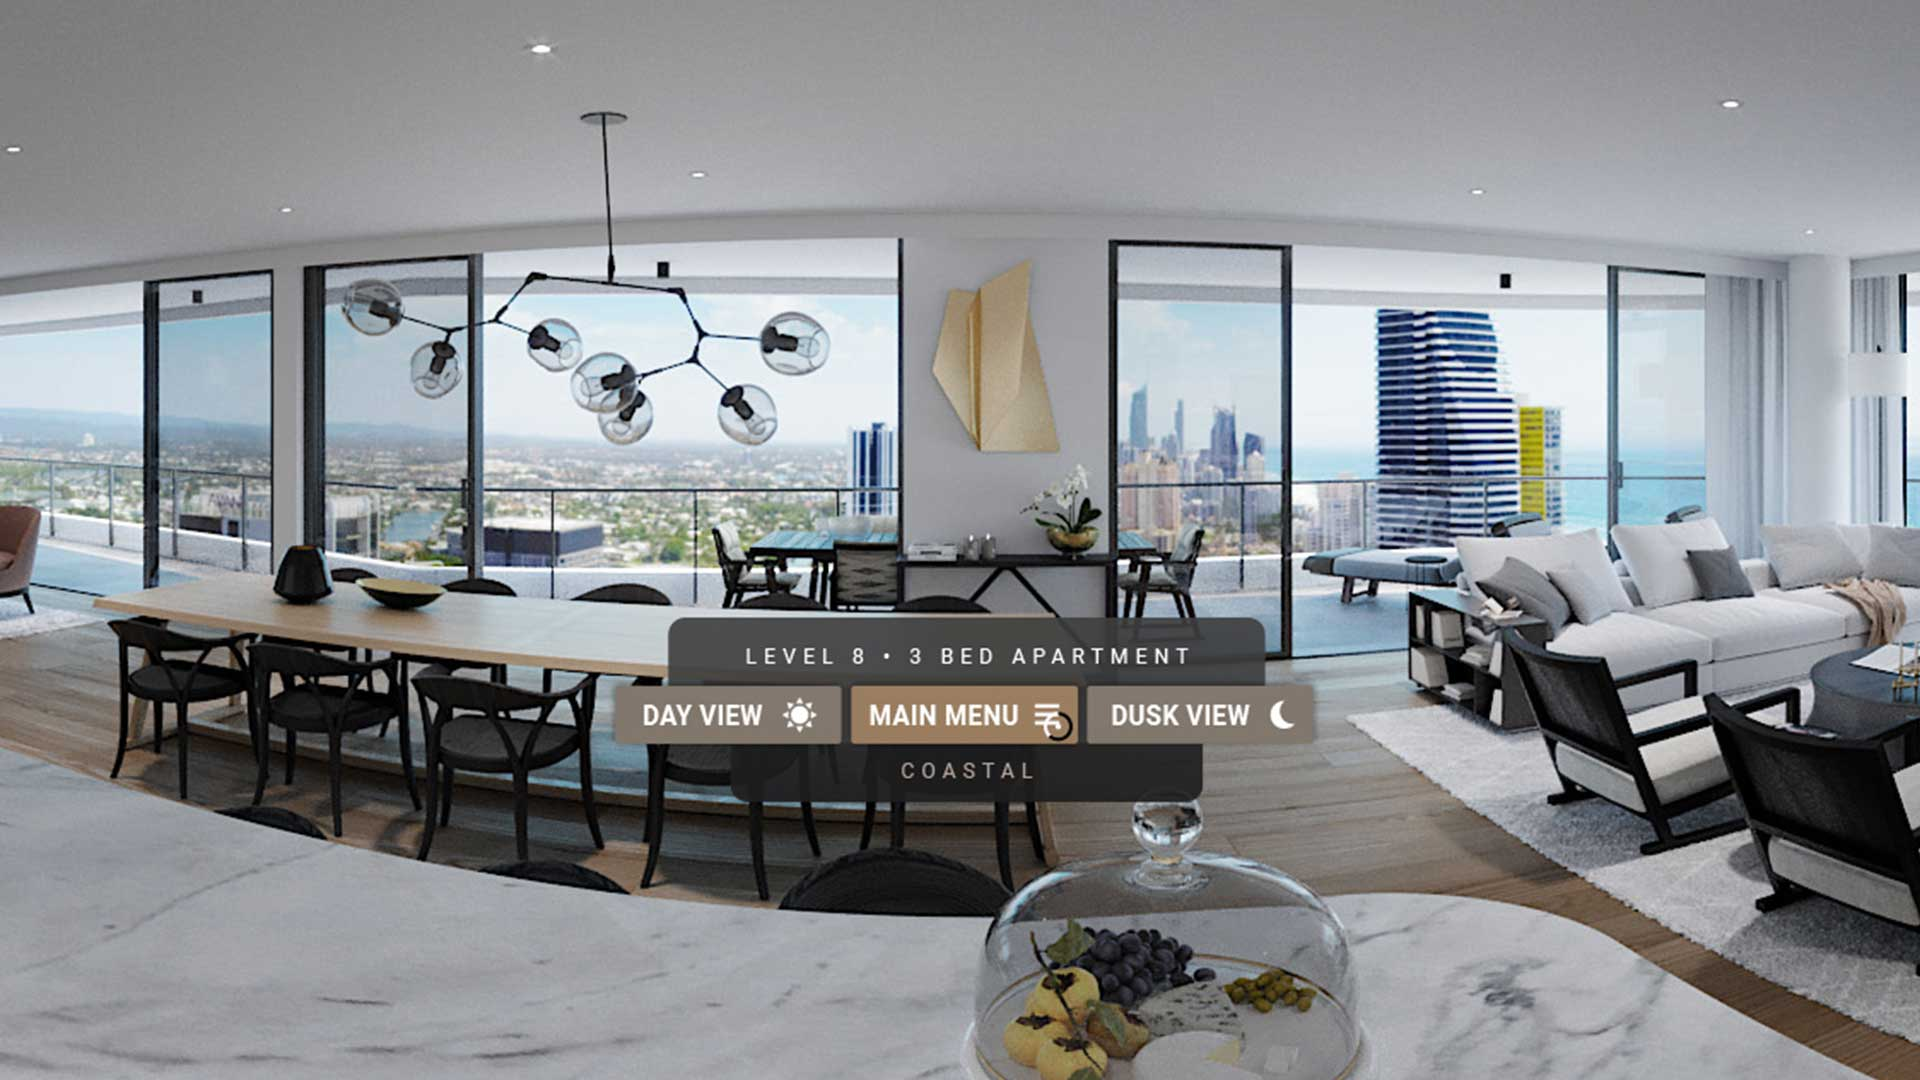 Real Estate VR Image of Infinity by Start Beyond 02